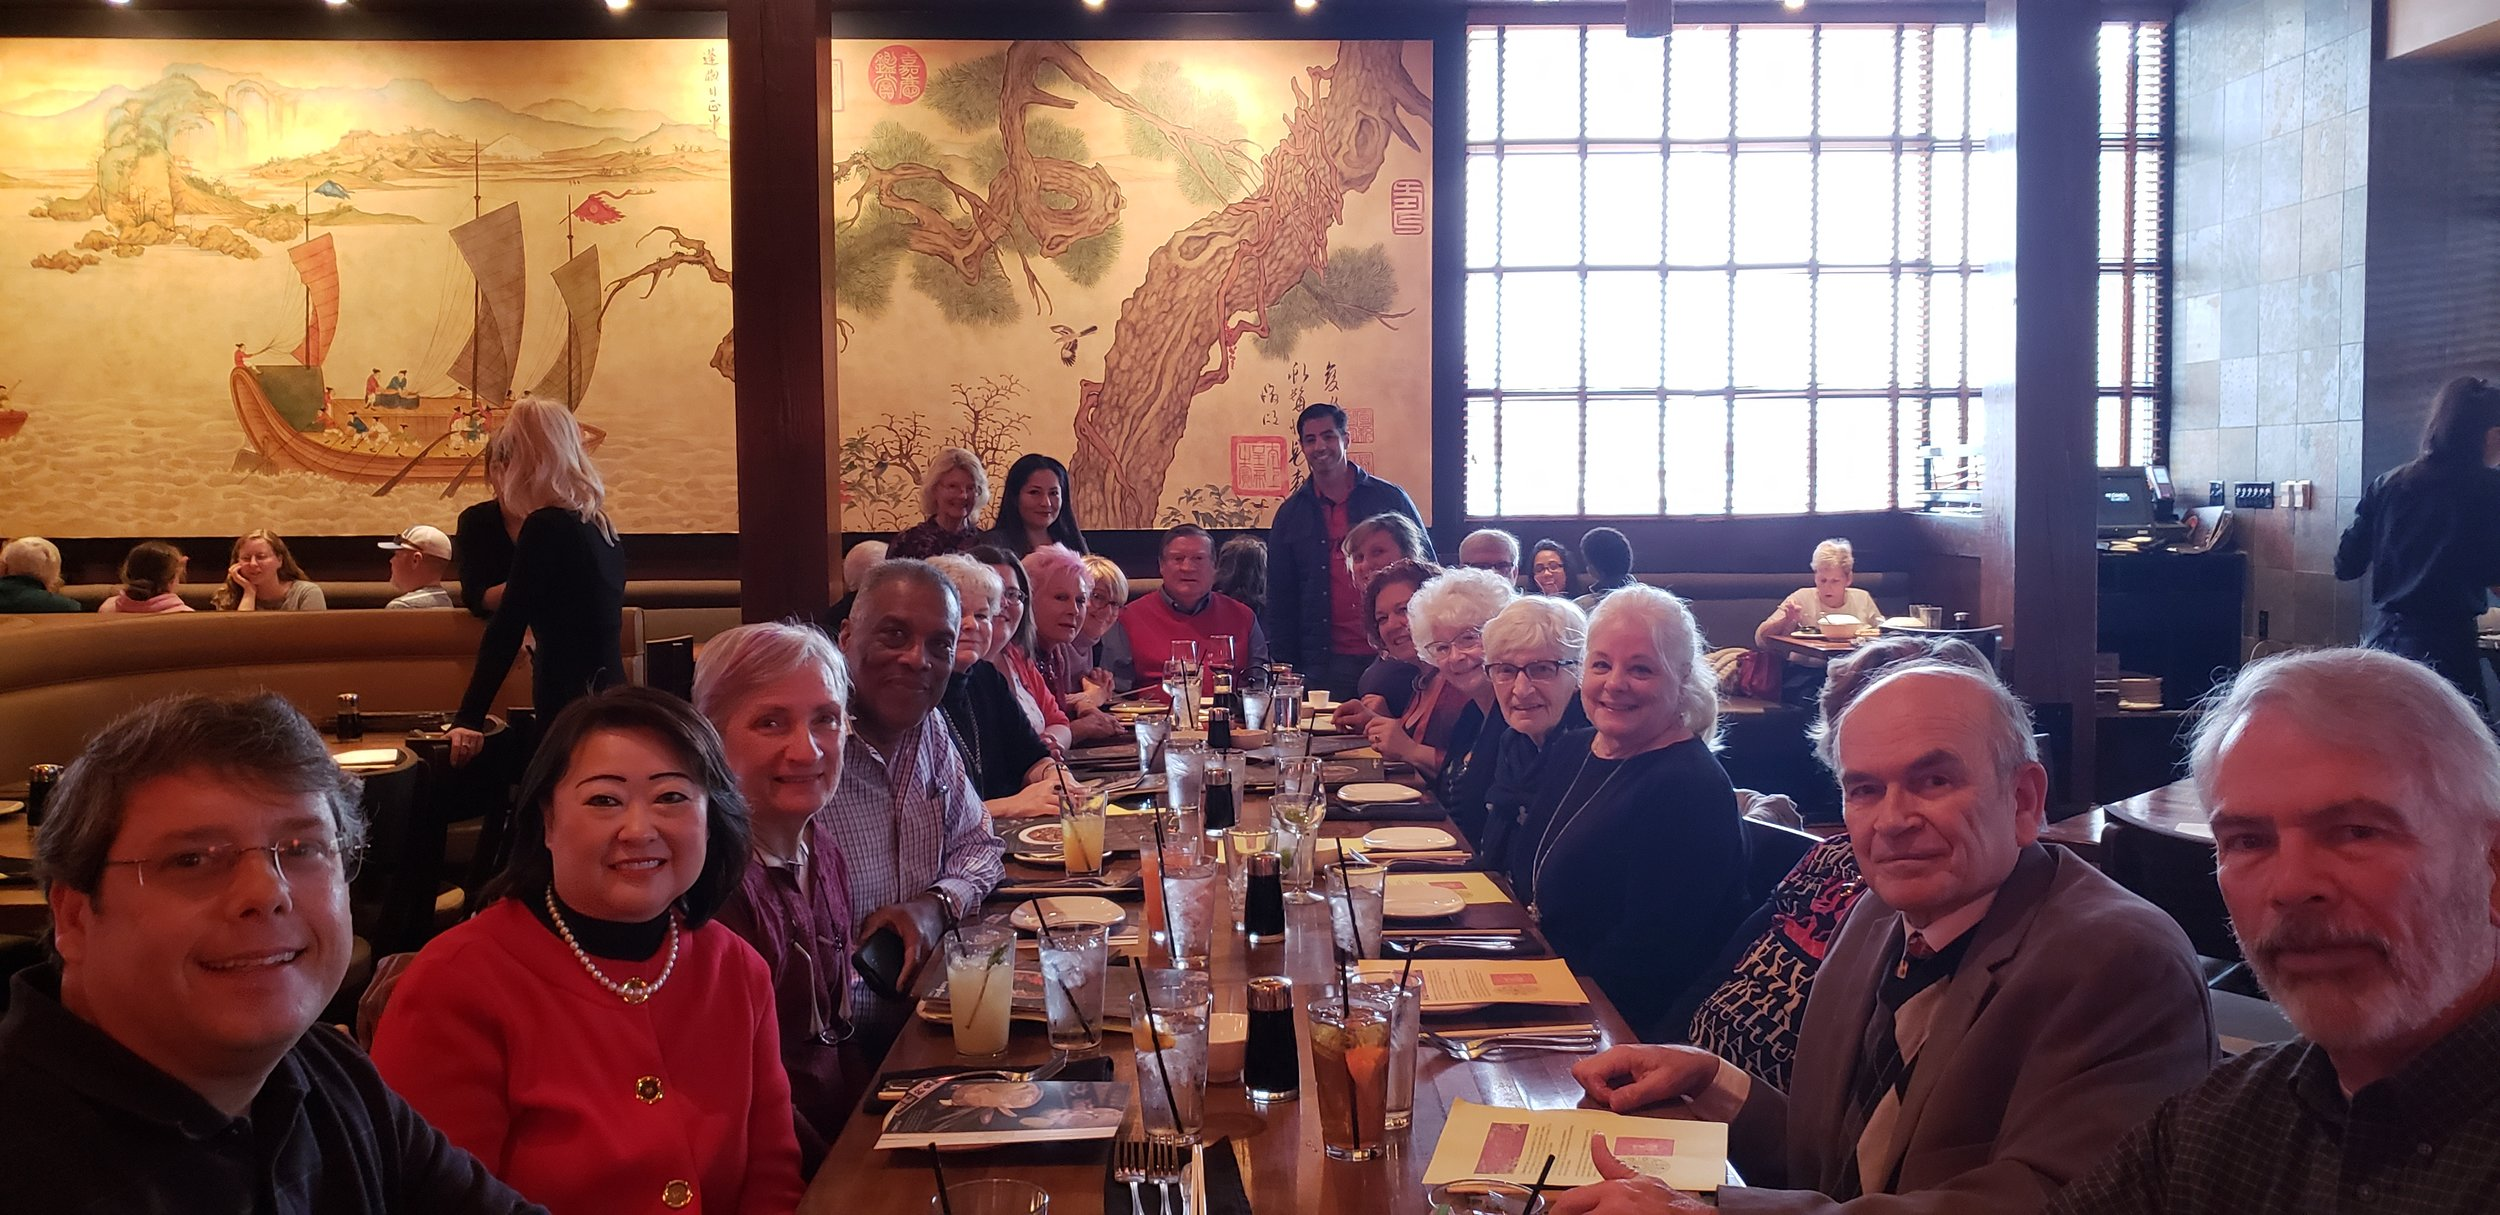 Sister Cities members at PF Chang's to celebrate the Year of the Pig!